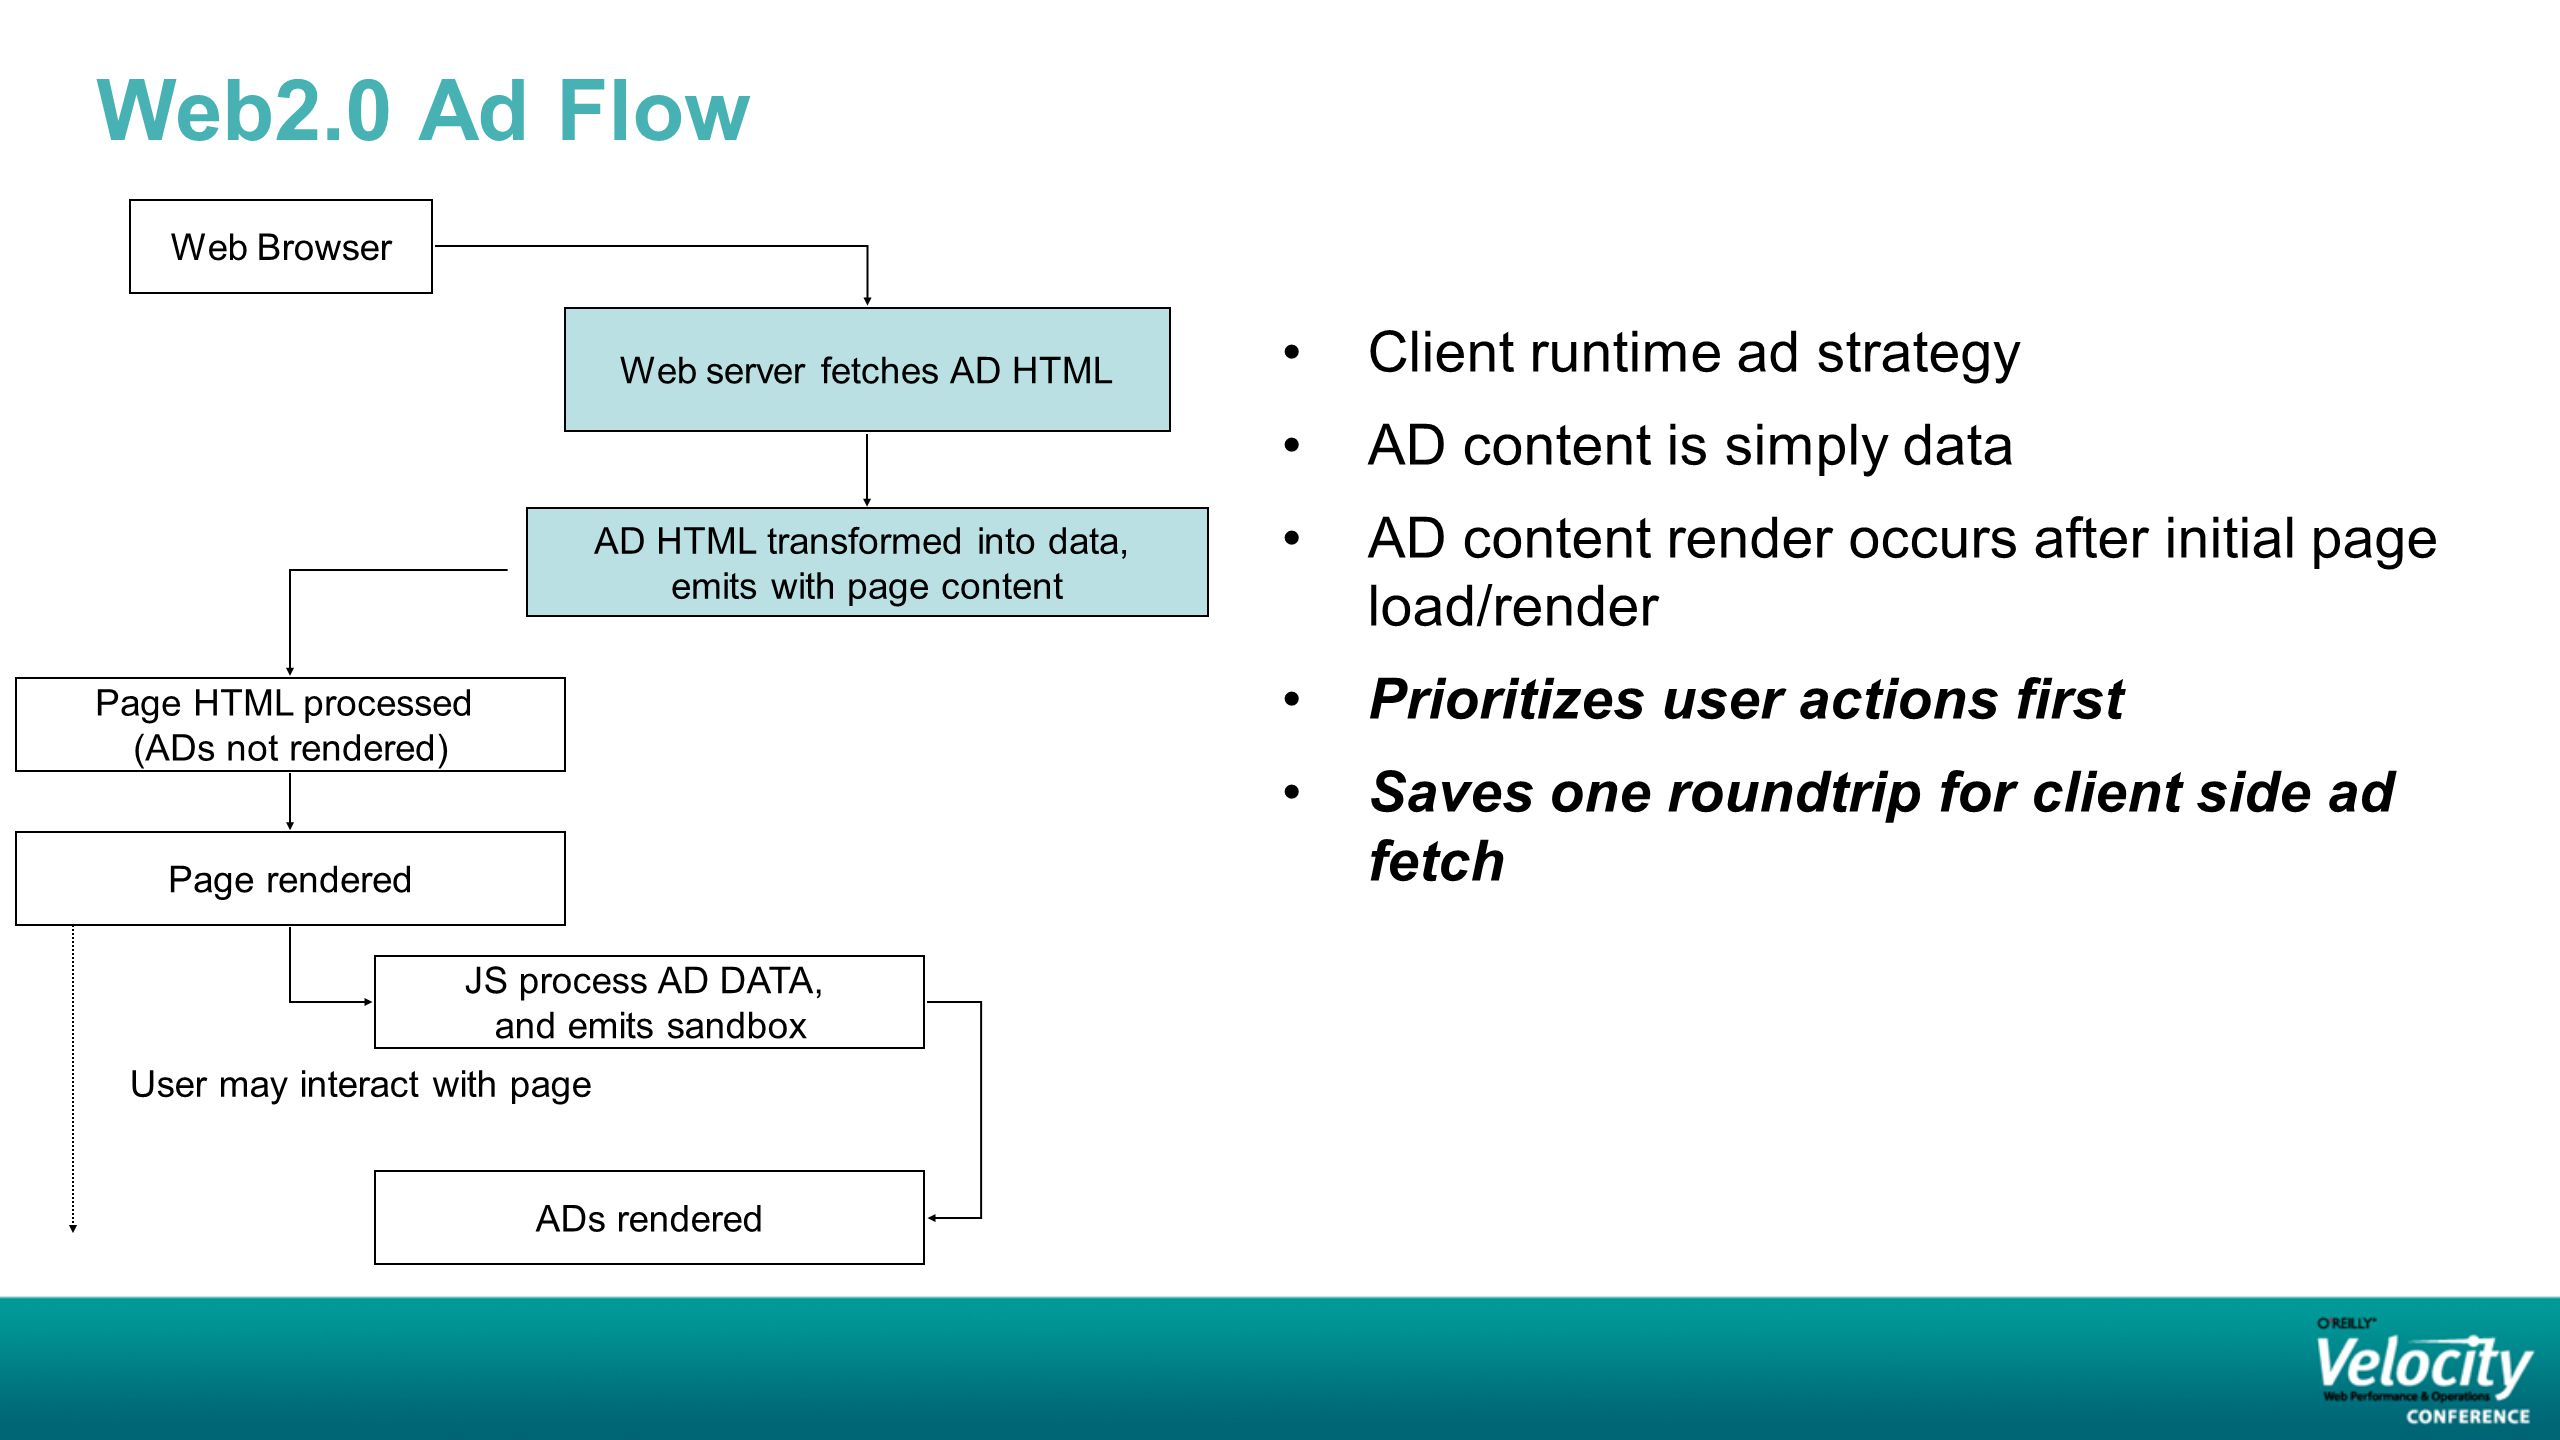 Web2.0 Ad Flow Client runtime ad strategy AD content is simply data AD content render occurs after initial page load/render Prioritizes user actions first Saves one roundtrip for client side ad fetch Web Browser Web server fetches AD HTML AD HTML transformed into data, emits with page content Page HTML processed (ADs not rendered) Page rendered JS process AD DATA, and emits sandbox ADs rendered User may interact with page